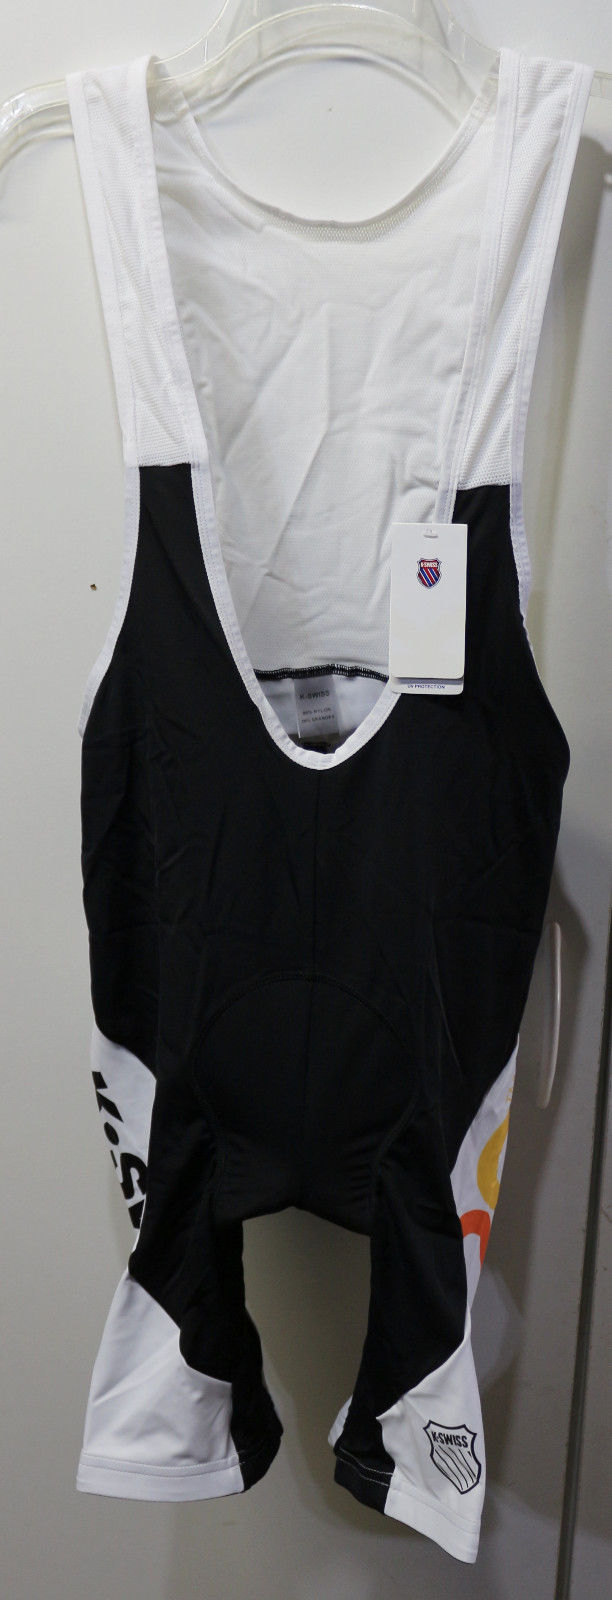 NWT K-Swiss Stand Up to Cancer Men's Tri Elite Pro Cycling Bib Shorts KSWISS MED